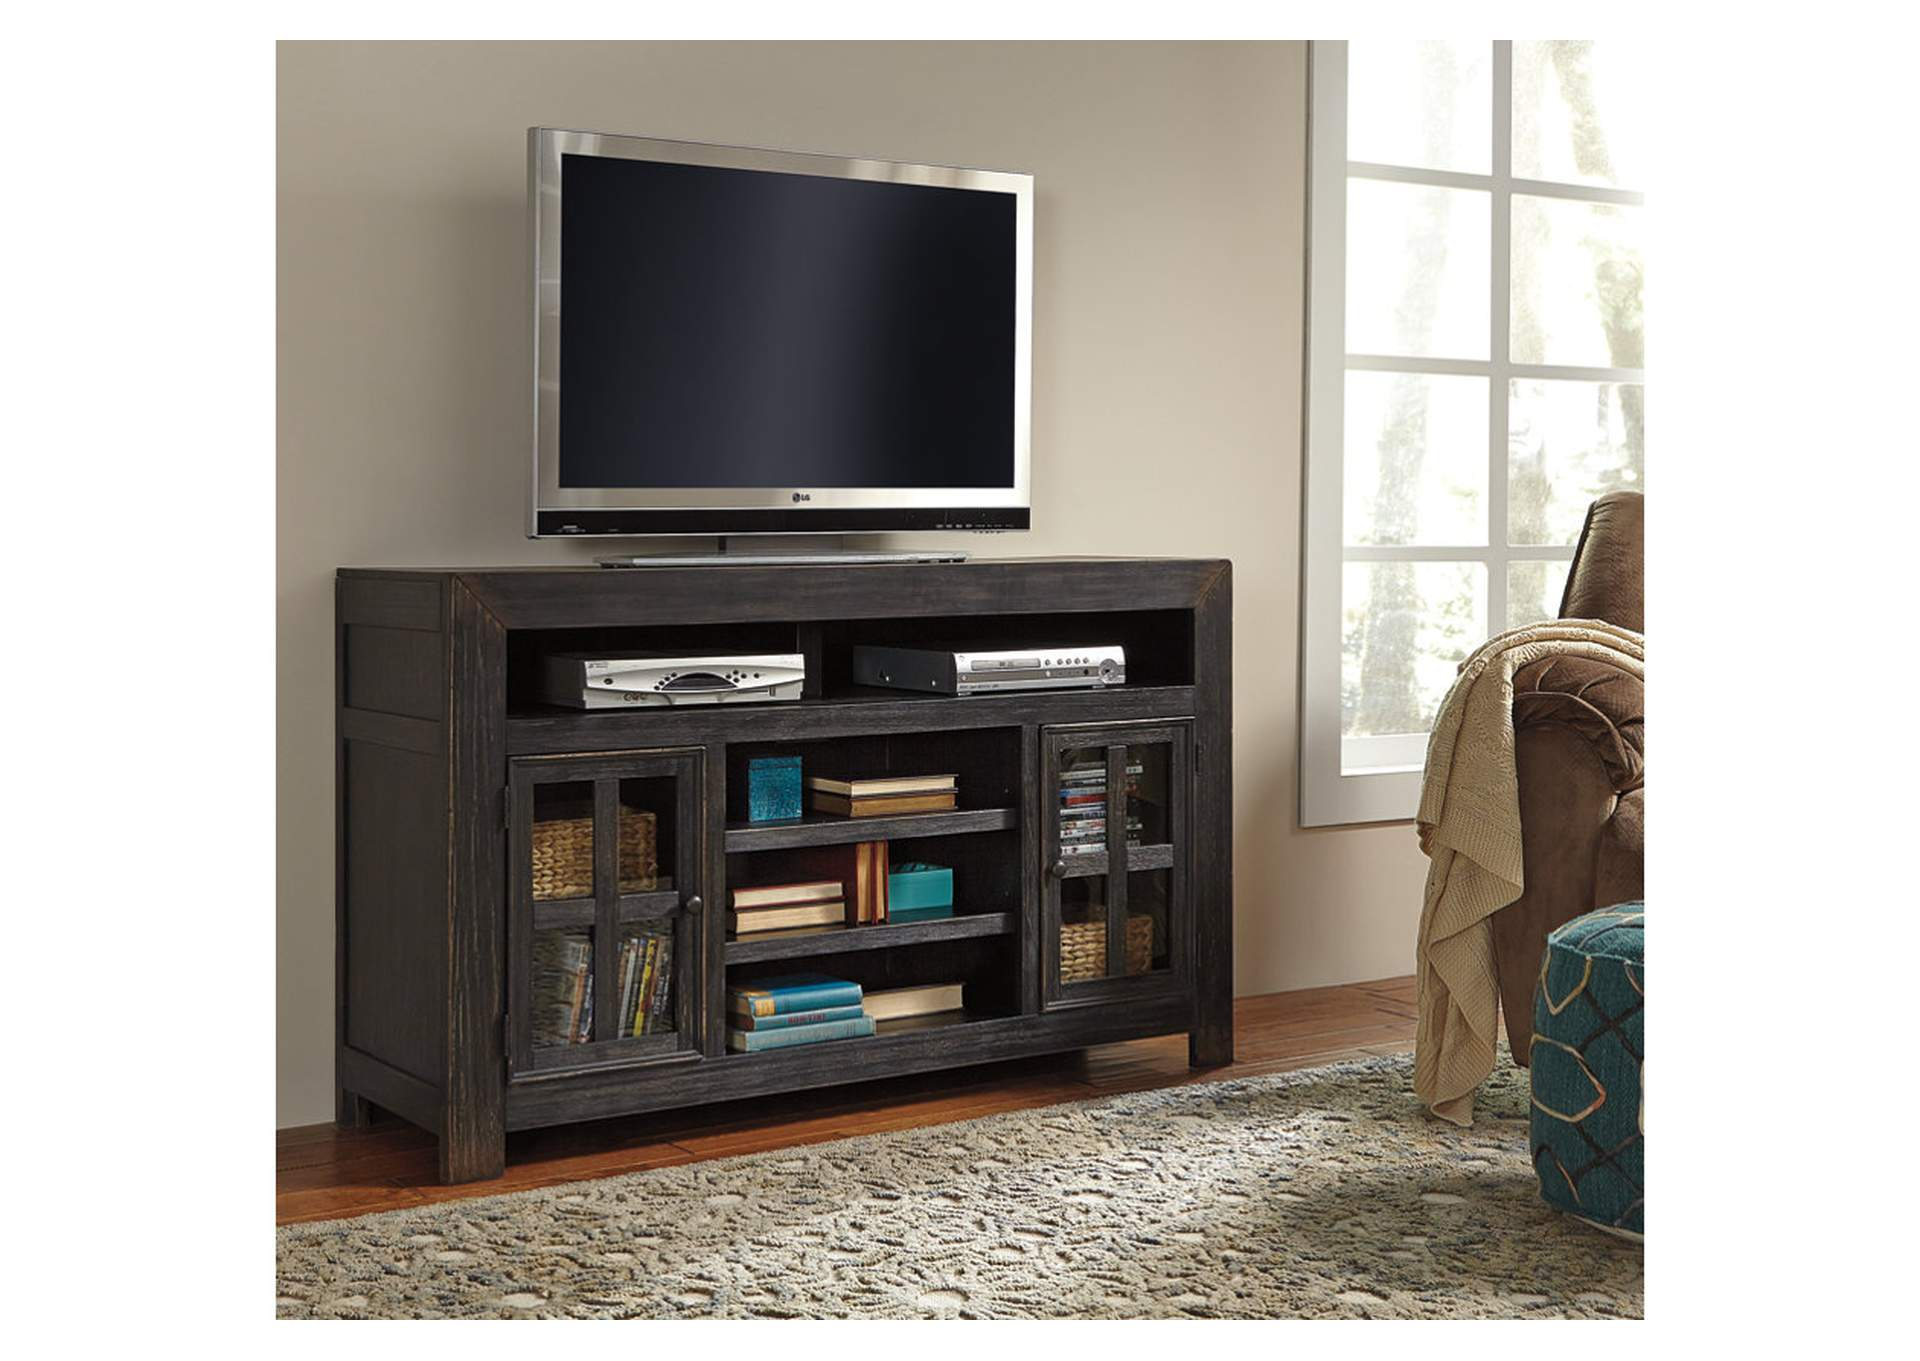 Gavelston Large TV Stand,Signature Design By Ashley